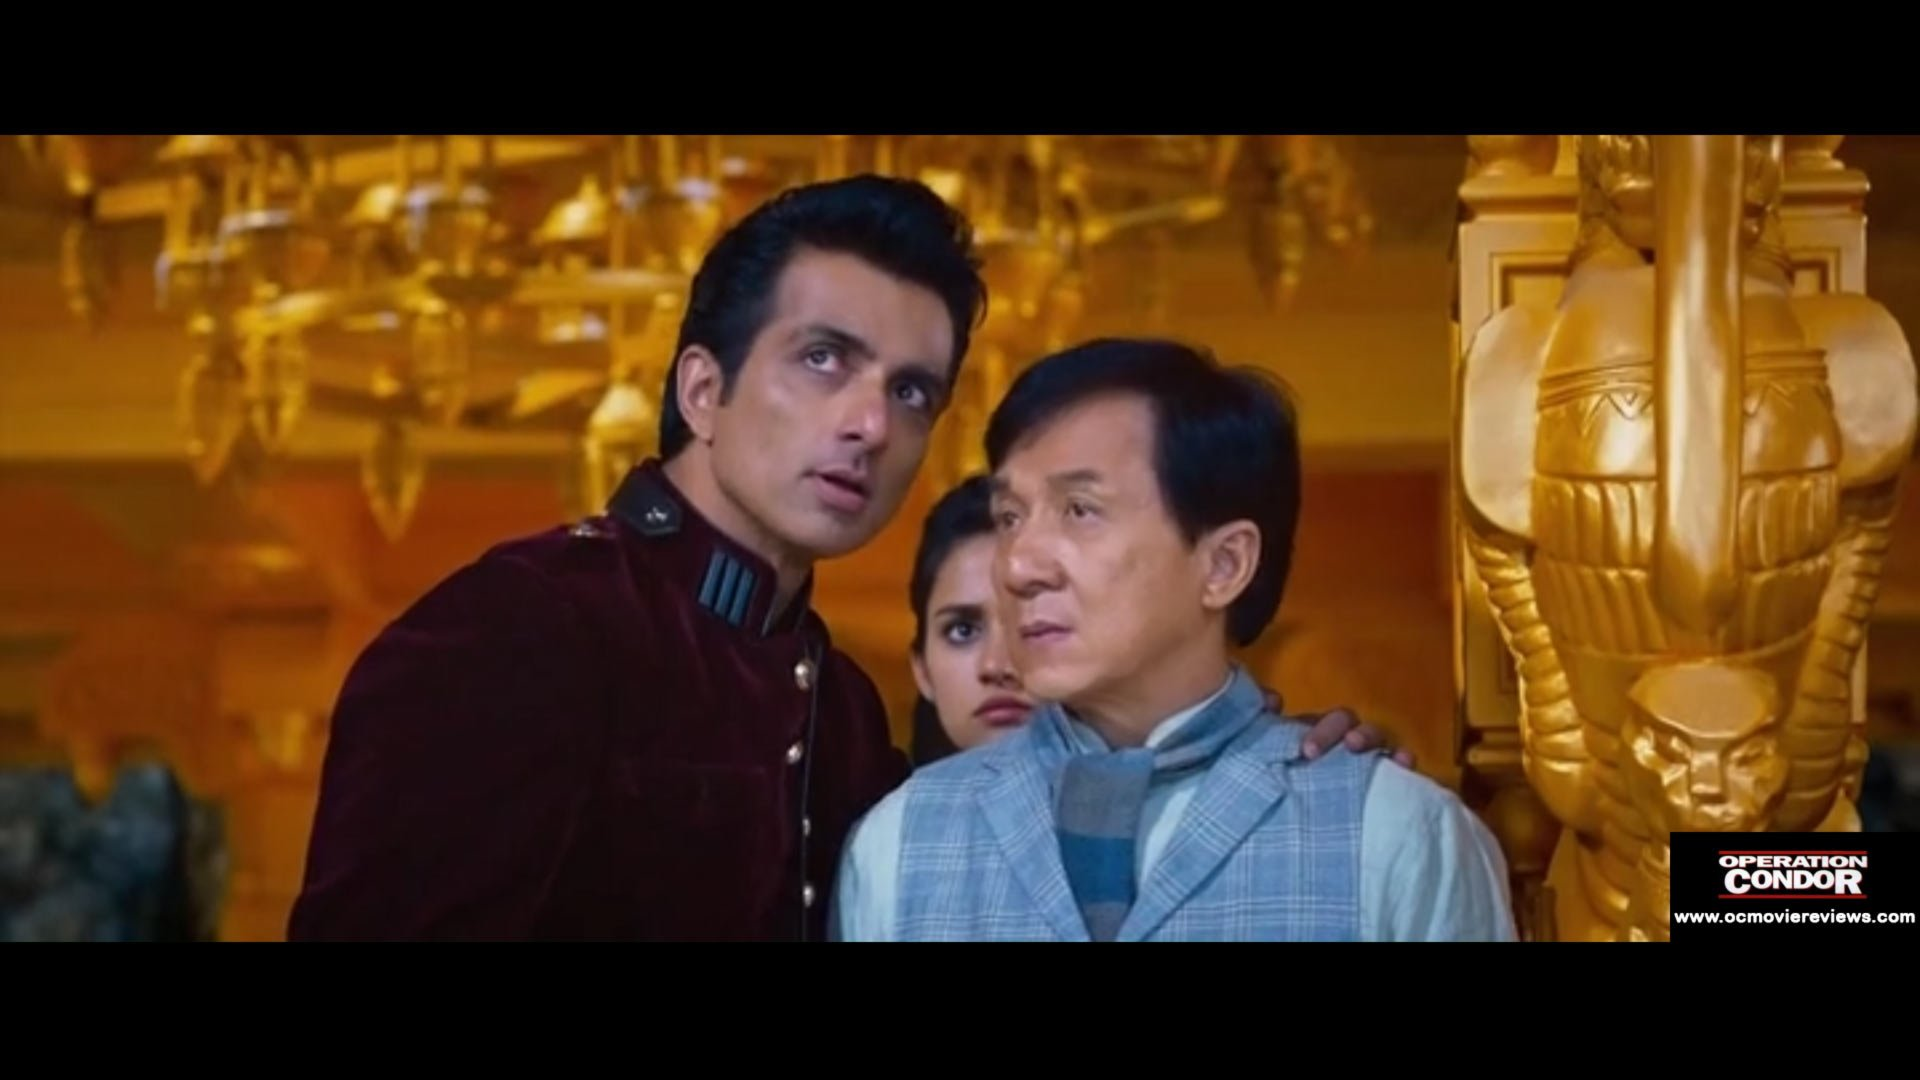 Kung Fu Yoga Review – Is Jackie Chan Is Back On The Kung Fu Path? - OC Movie Reviews - Movie Reviews, Movie News, Documentary Reviews, Short Films, Short Film Reviews, Trailers, Movie Trailers, Interviews, film reviews, film news, hollywood, indie films, documentaries